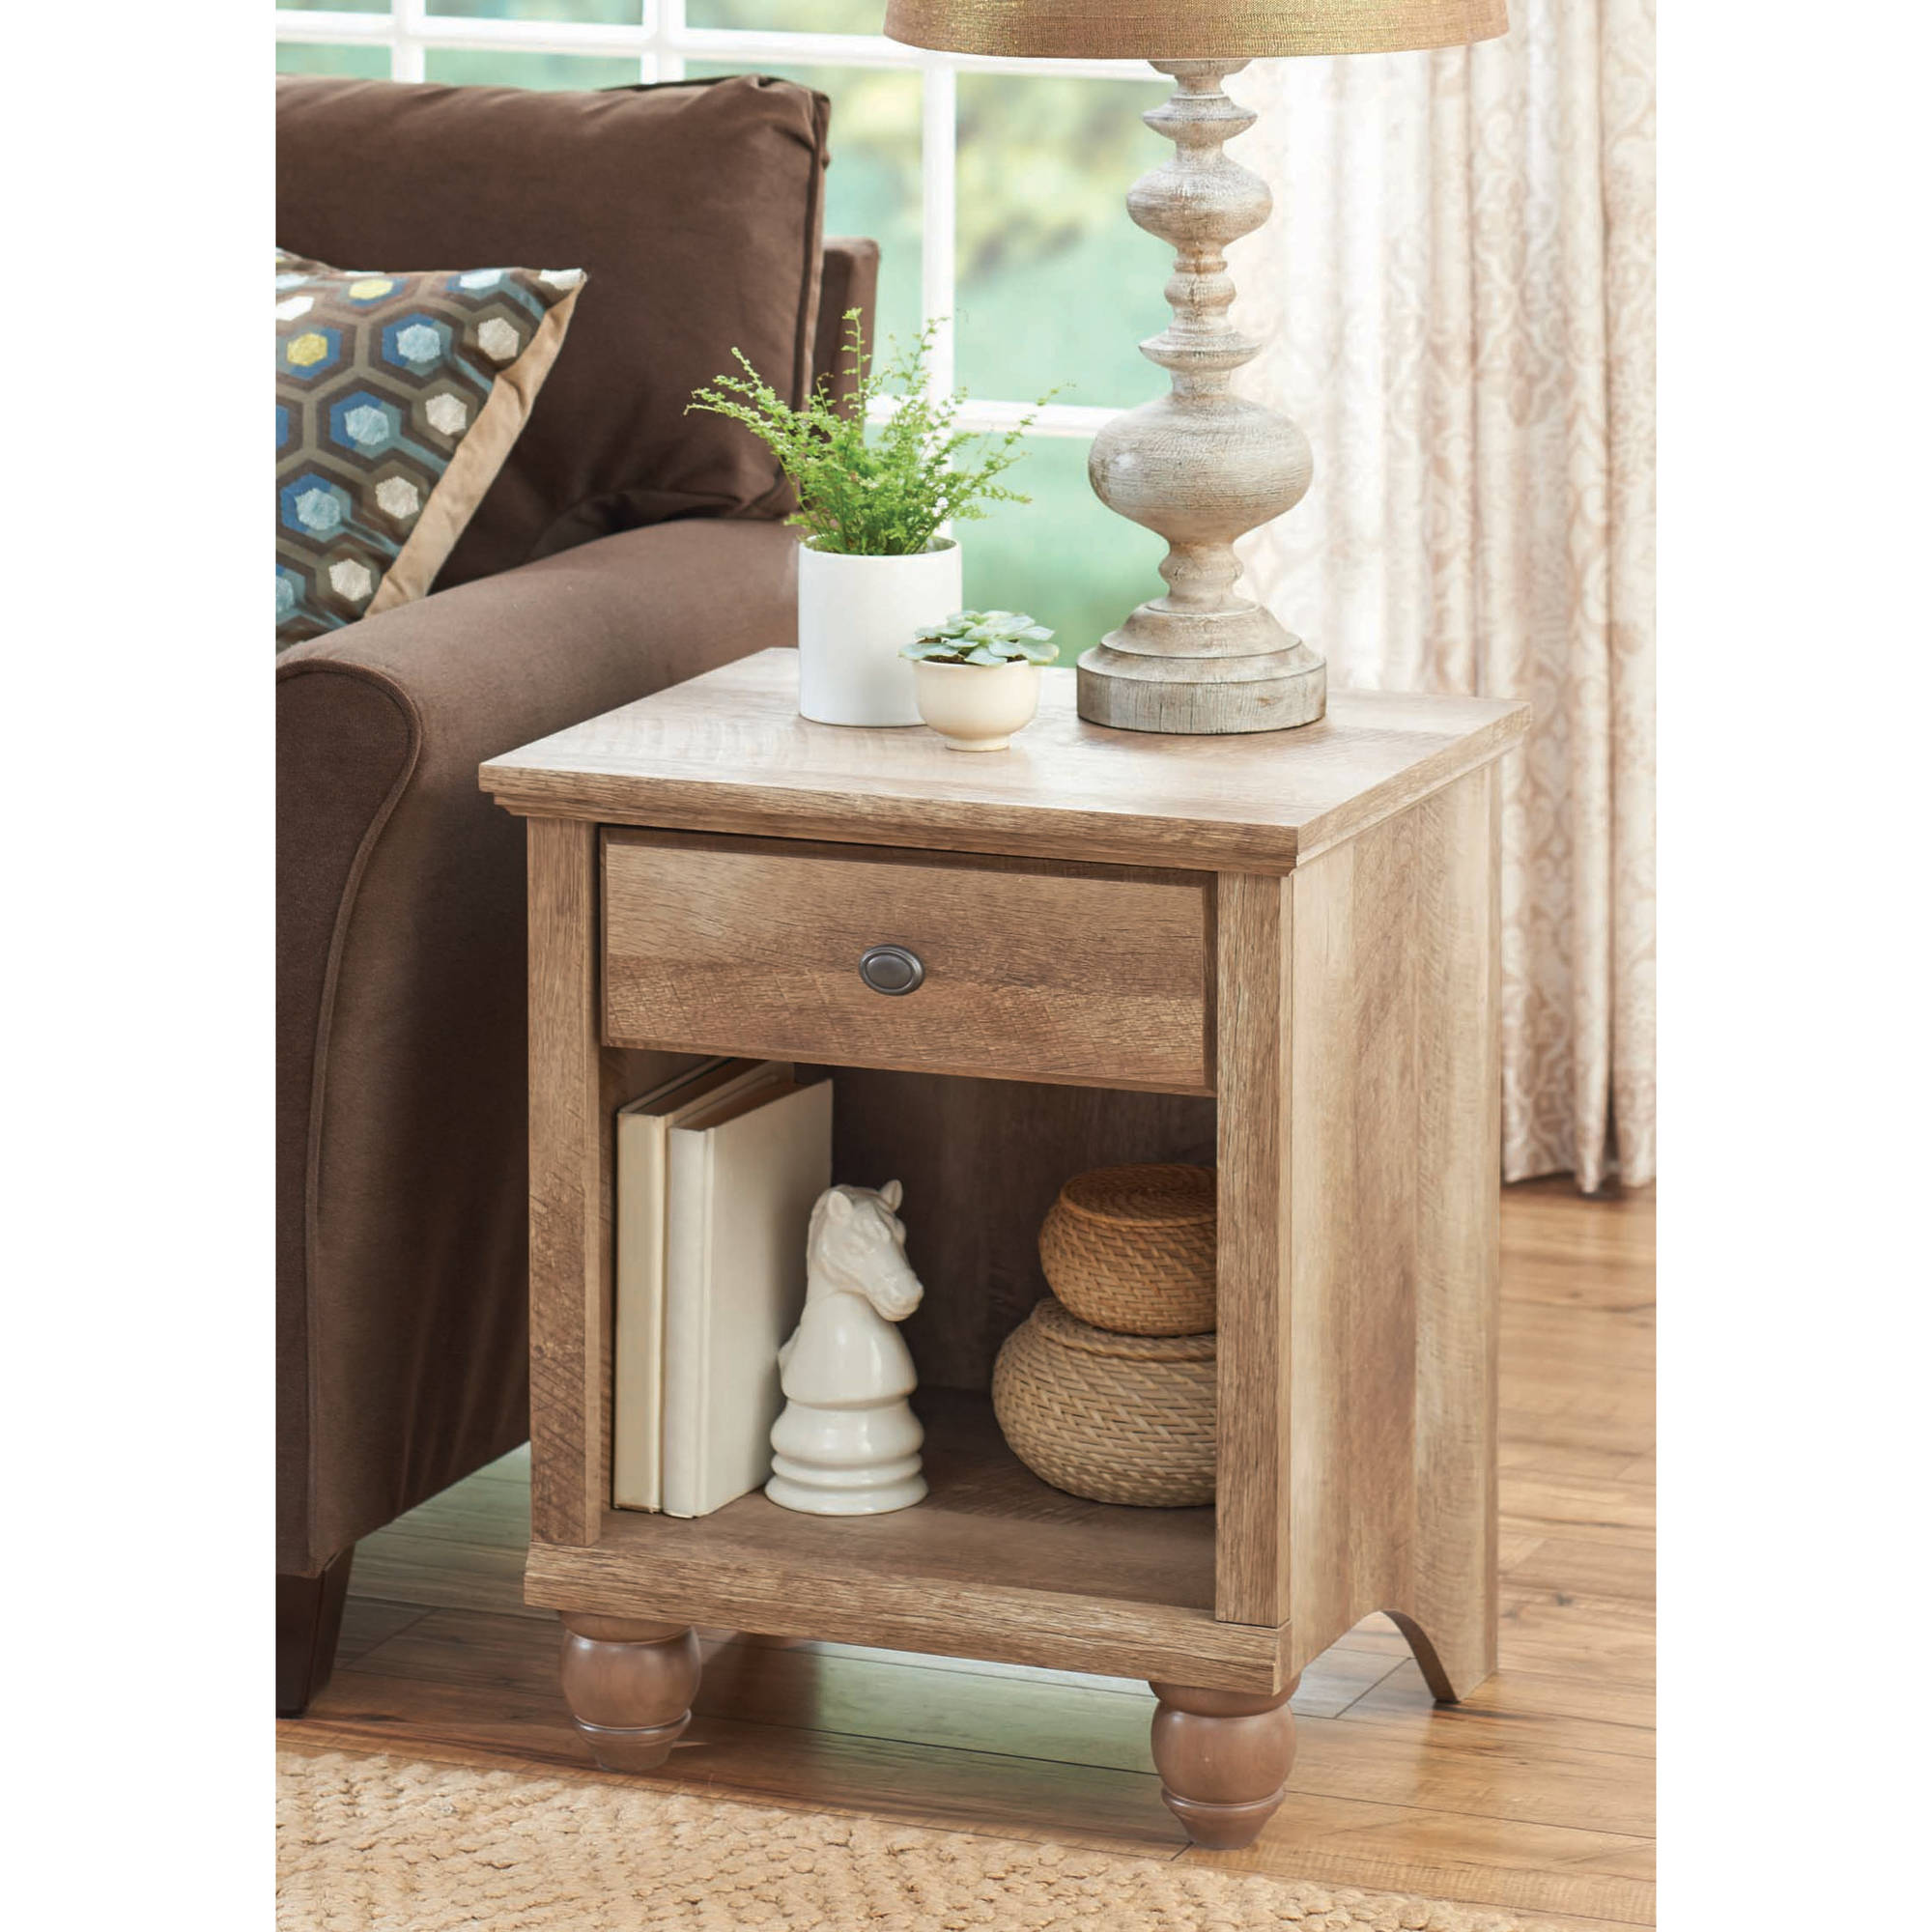 better homes gardens crossmill accent table weathered finish decorative tables living room windham storage cabinet teal monarch specialties hall console hobby lobby patio chair